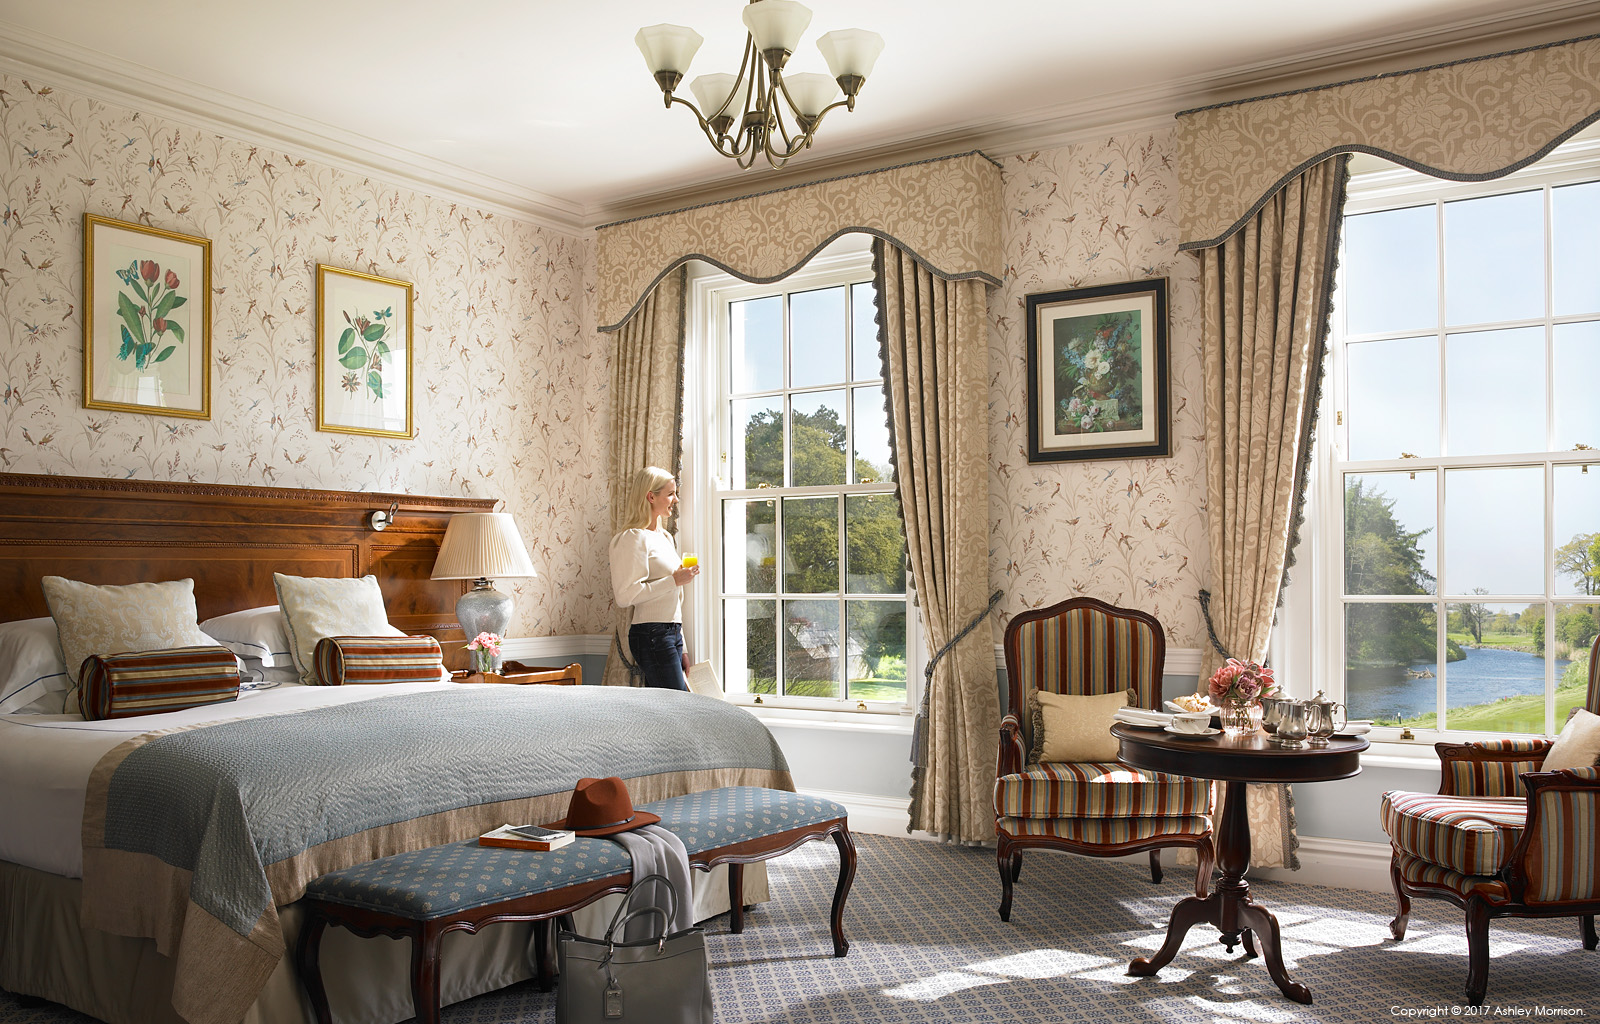 The Liffey Deluxe River View bedroom at the Kildare Hotel Spa & Country Club in County Kildare